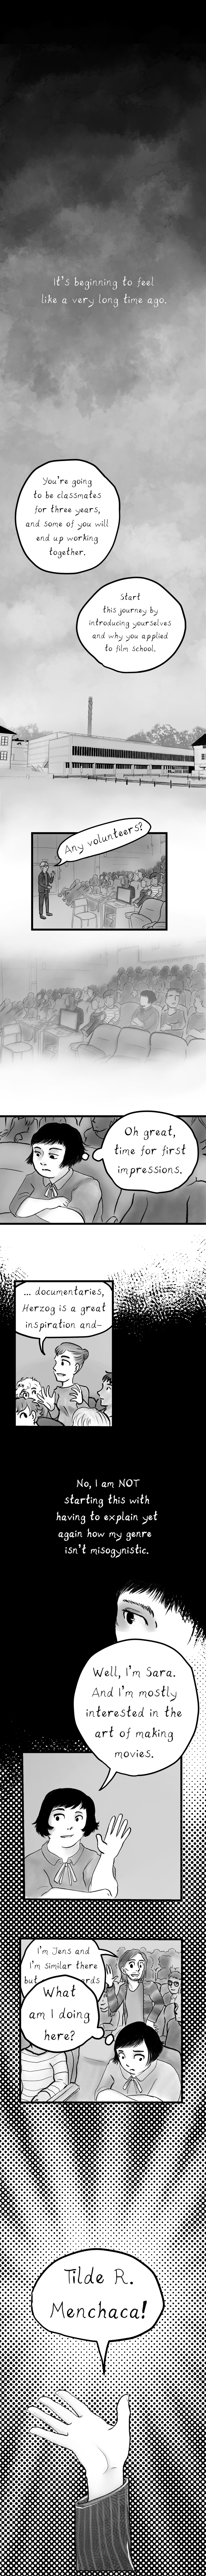 Chapter 06: page 01